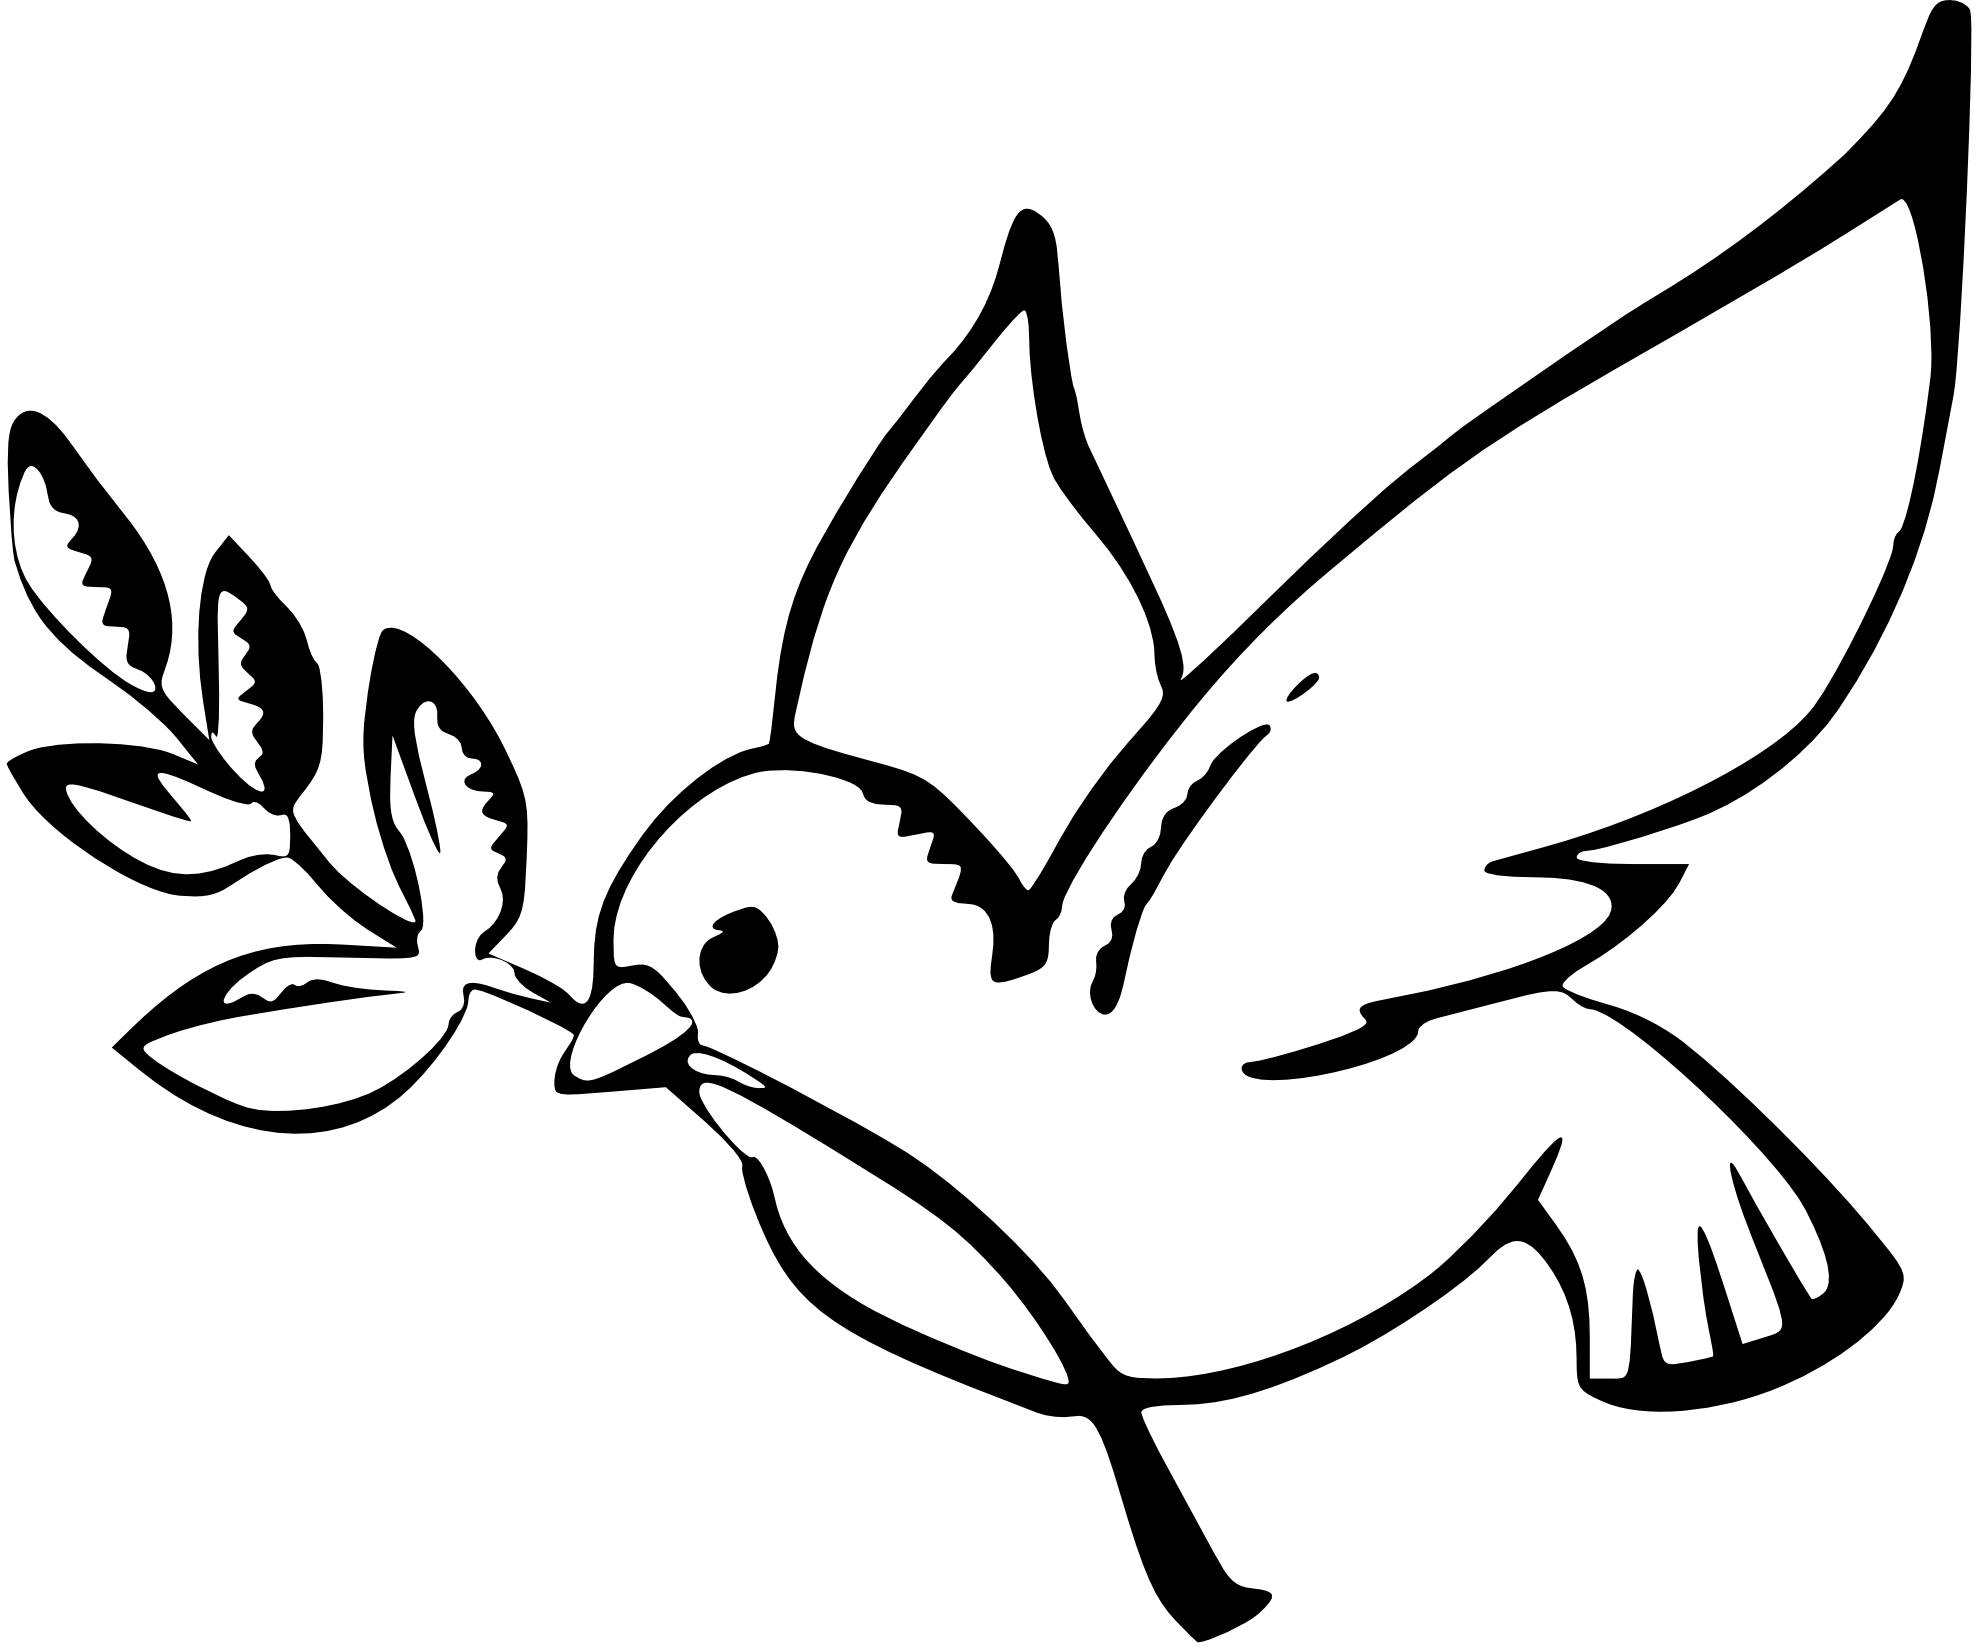 Christmas Dove Clip Art Black and White